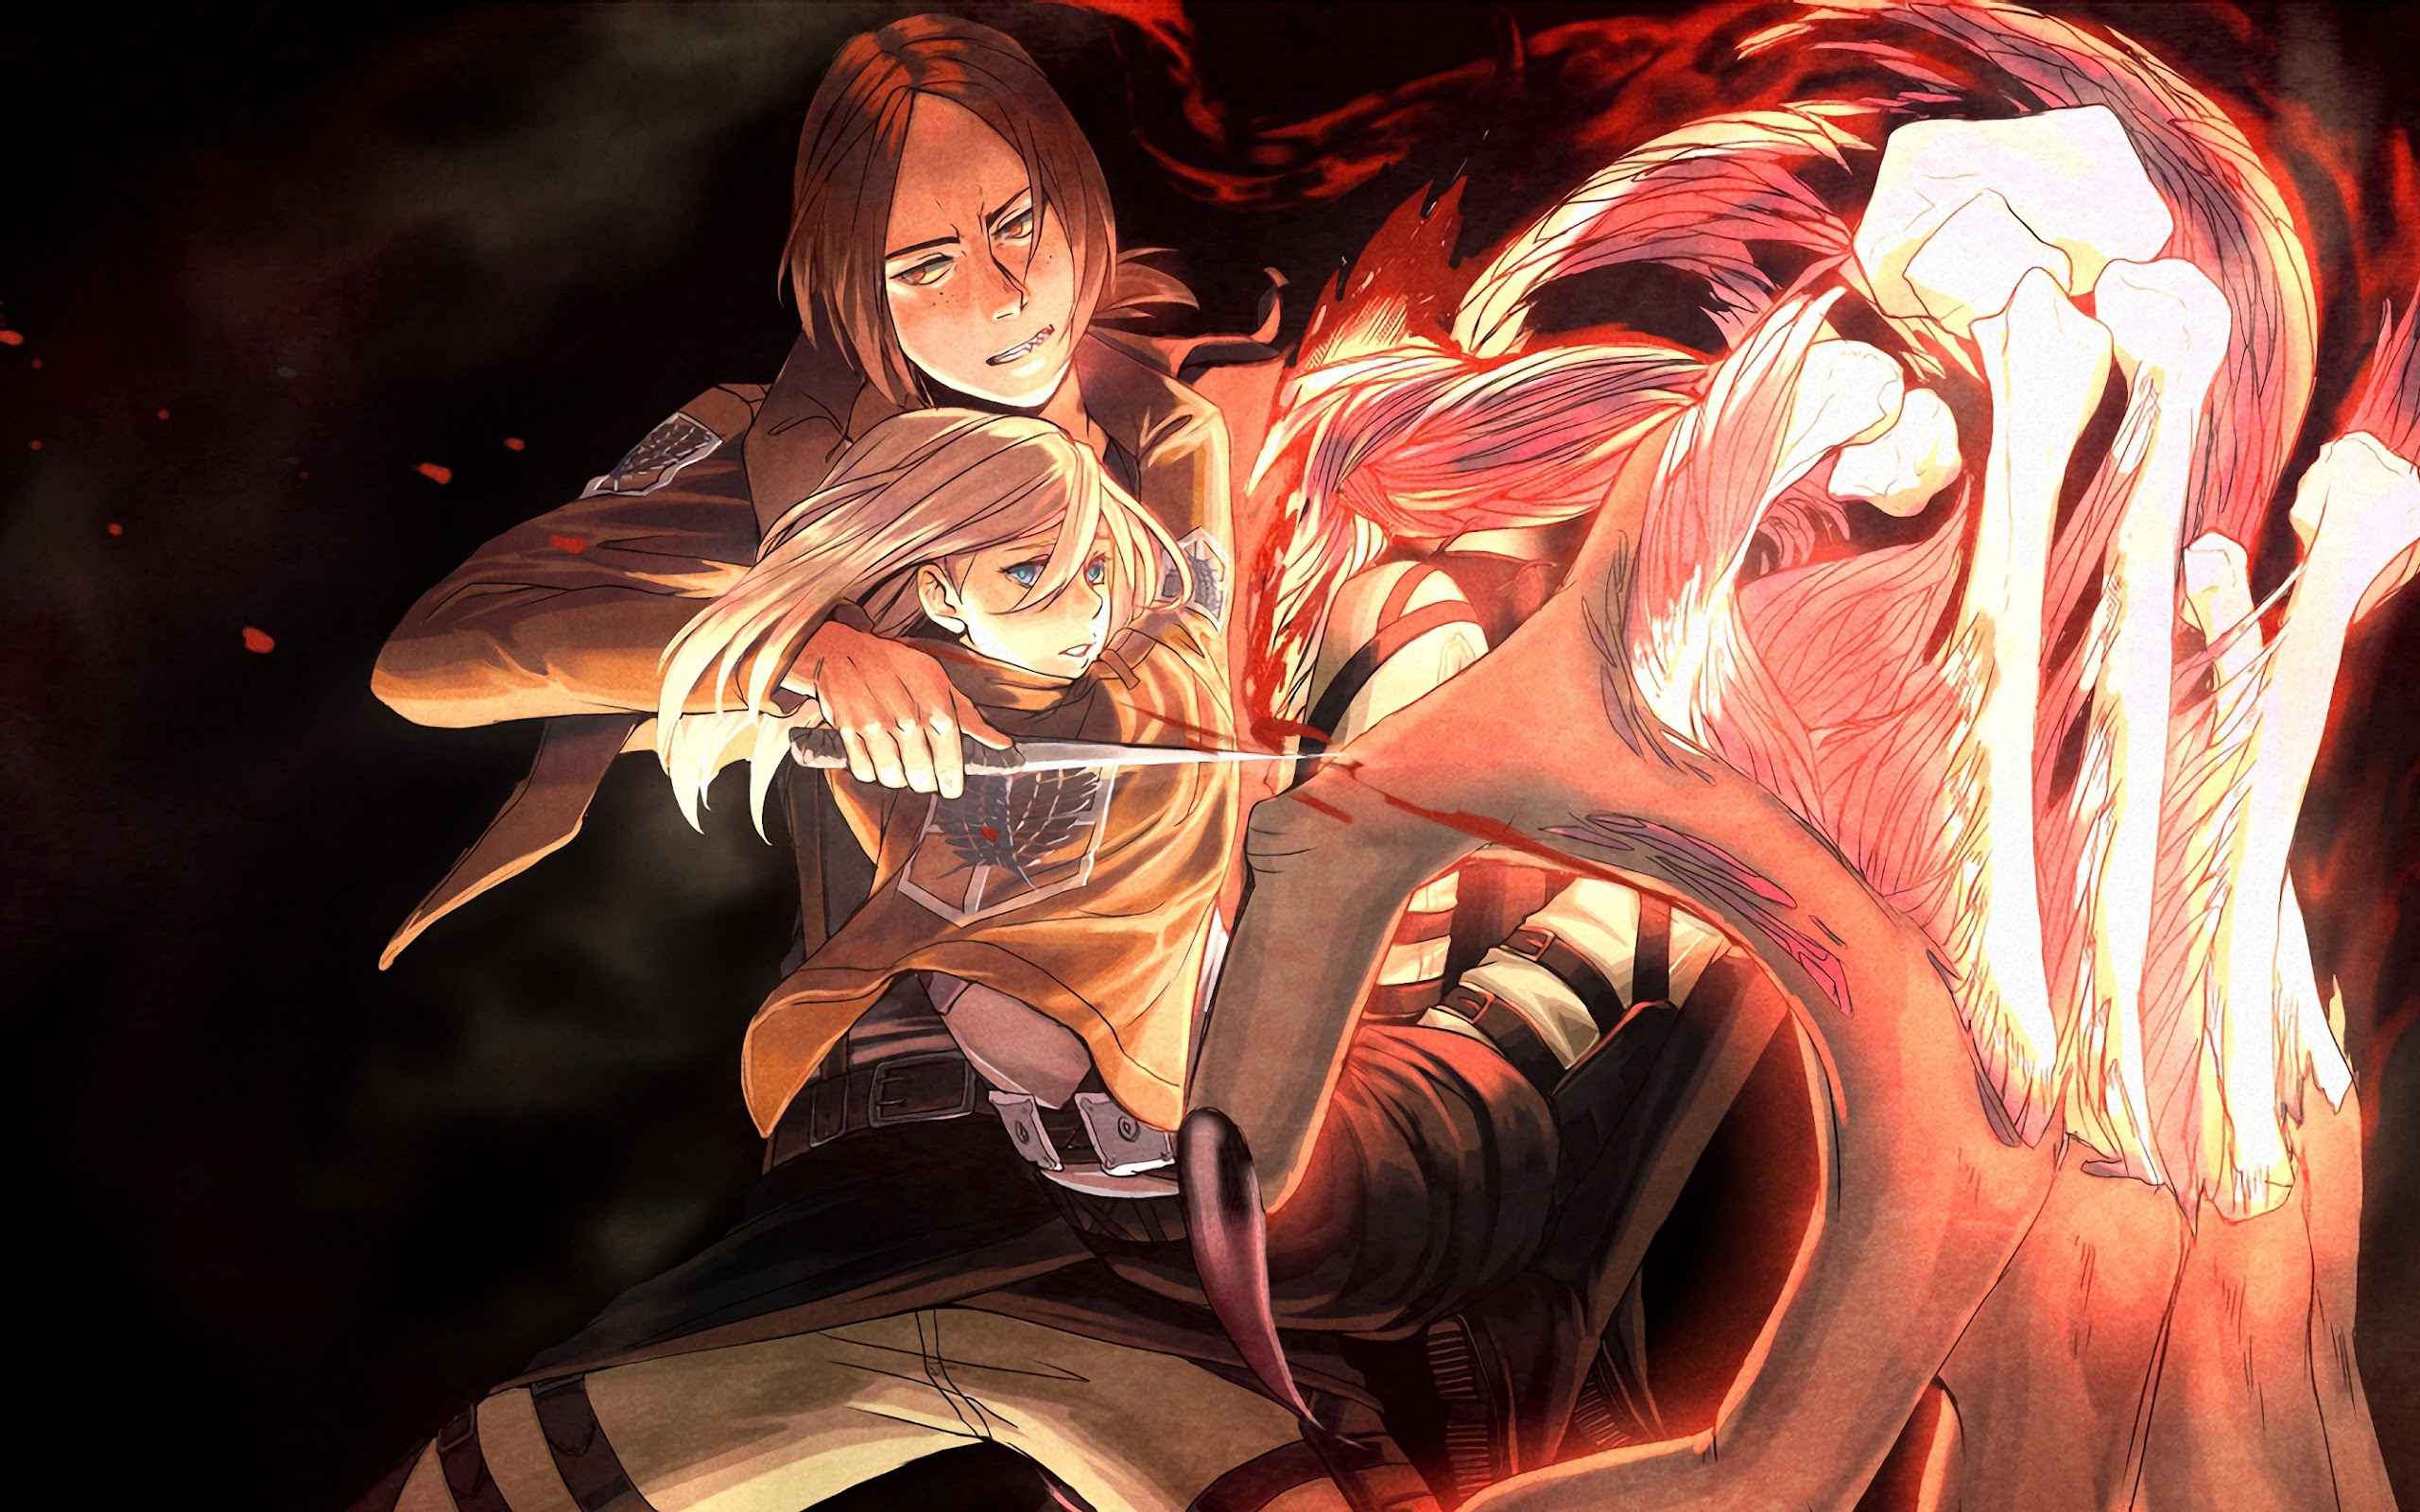 Ymir Krista Lenz Attack On Titan 4k Wallpaper 163